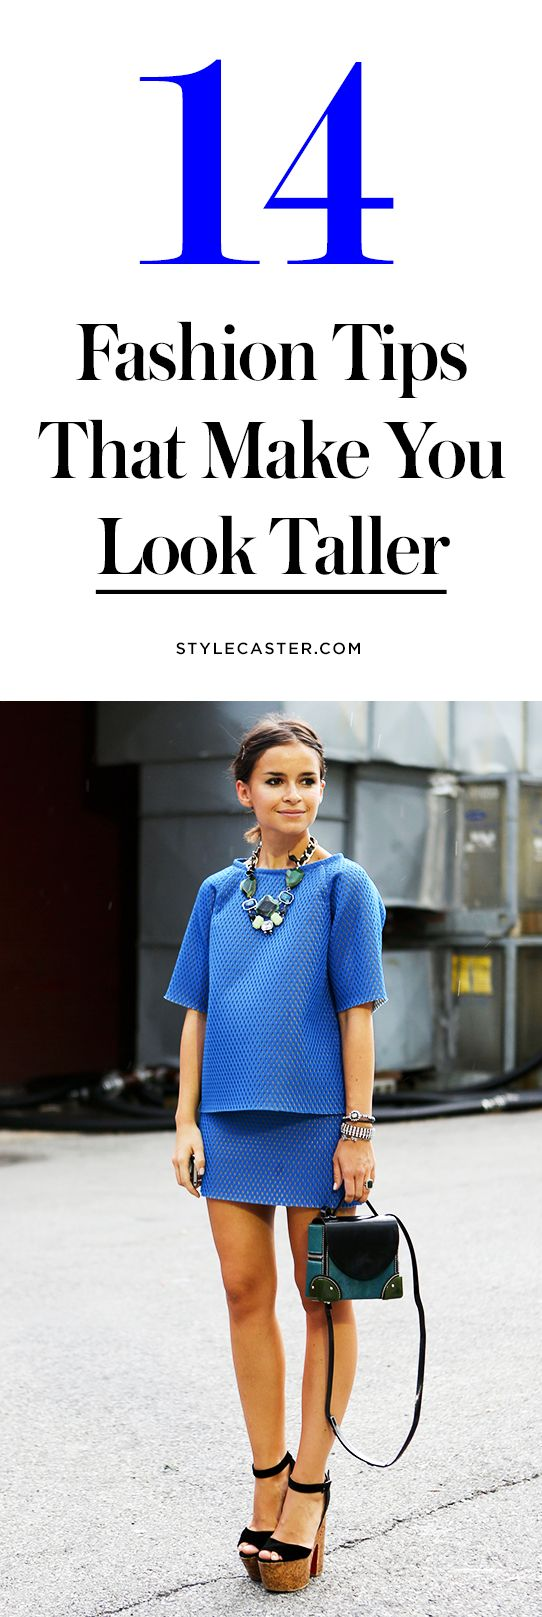 12 Fashion Styling Tricks to Make You Look Taller — Short street style stars like Miroslava Duma and Olivia Lopez have got this down. Learn how to expertly outfit your petite frame @stylecaster | StyleCaster